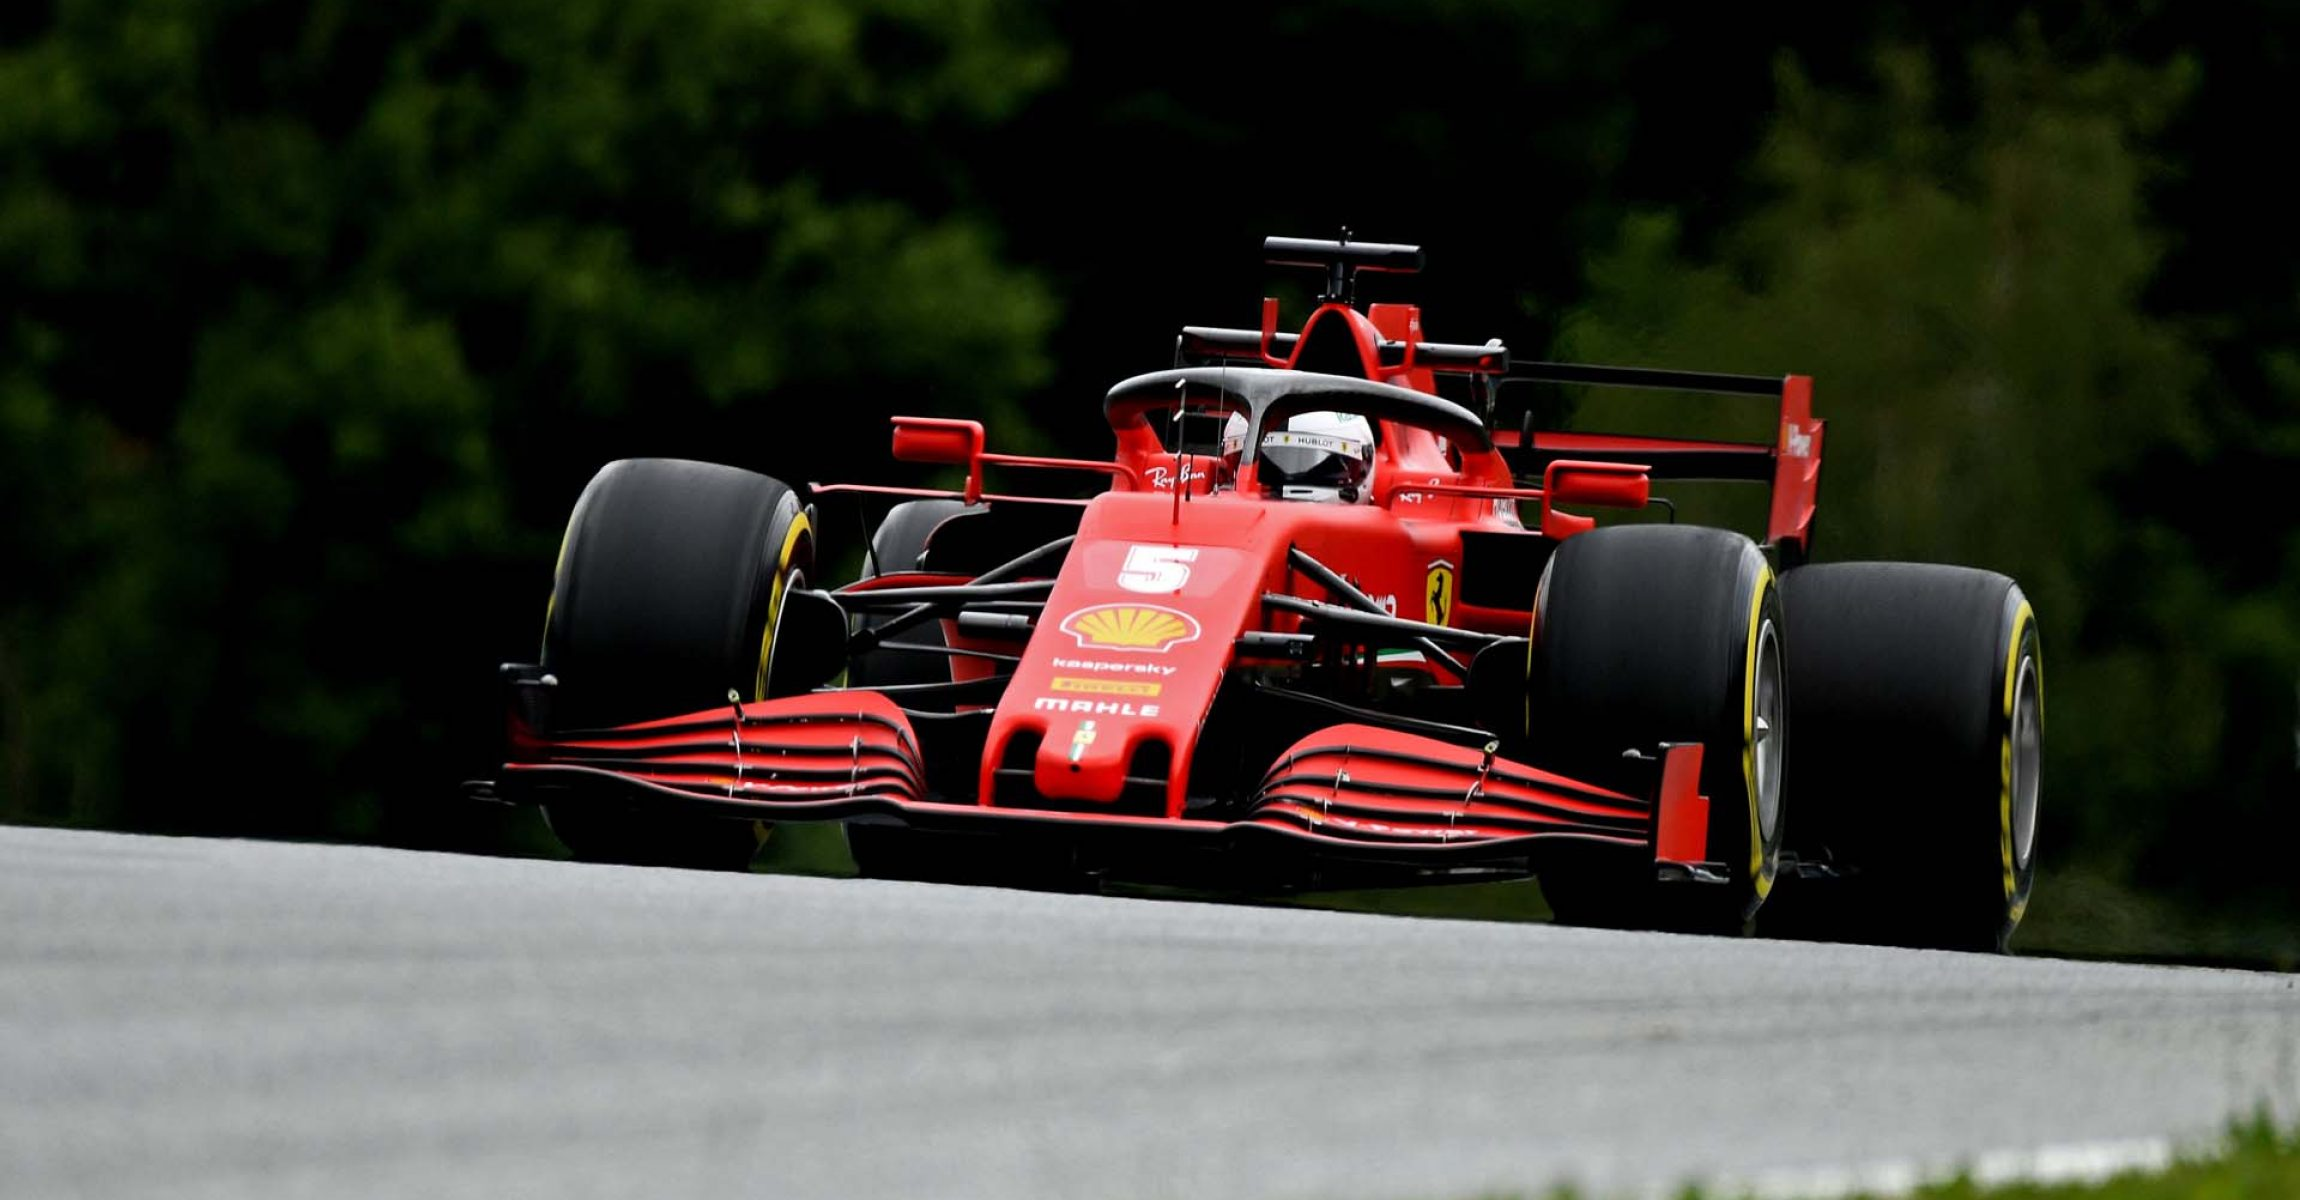 GP AUSTRIA F1/2020 - VENERDÌ 03/07/2020 credit: @Scuderia Ferrari Press Office Sebastian Vettel